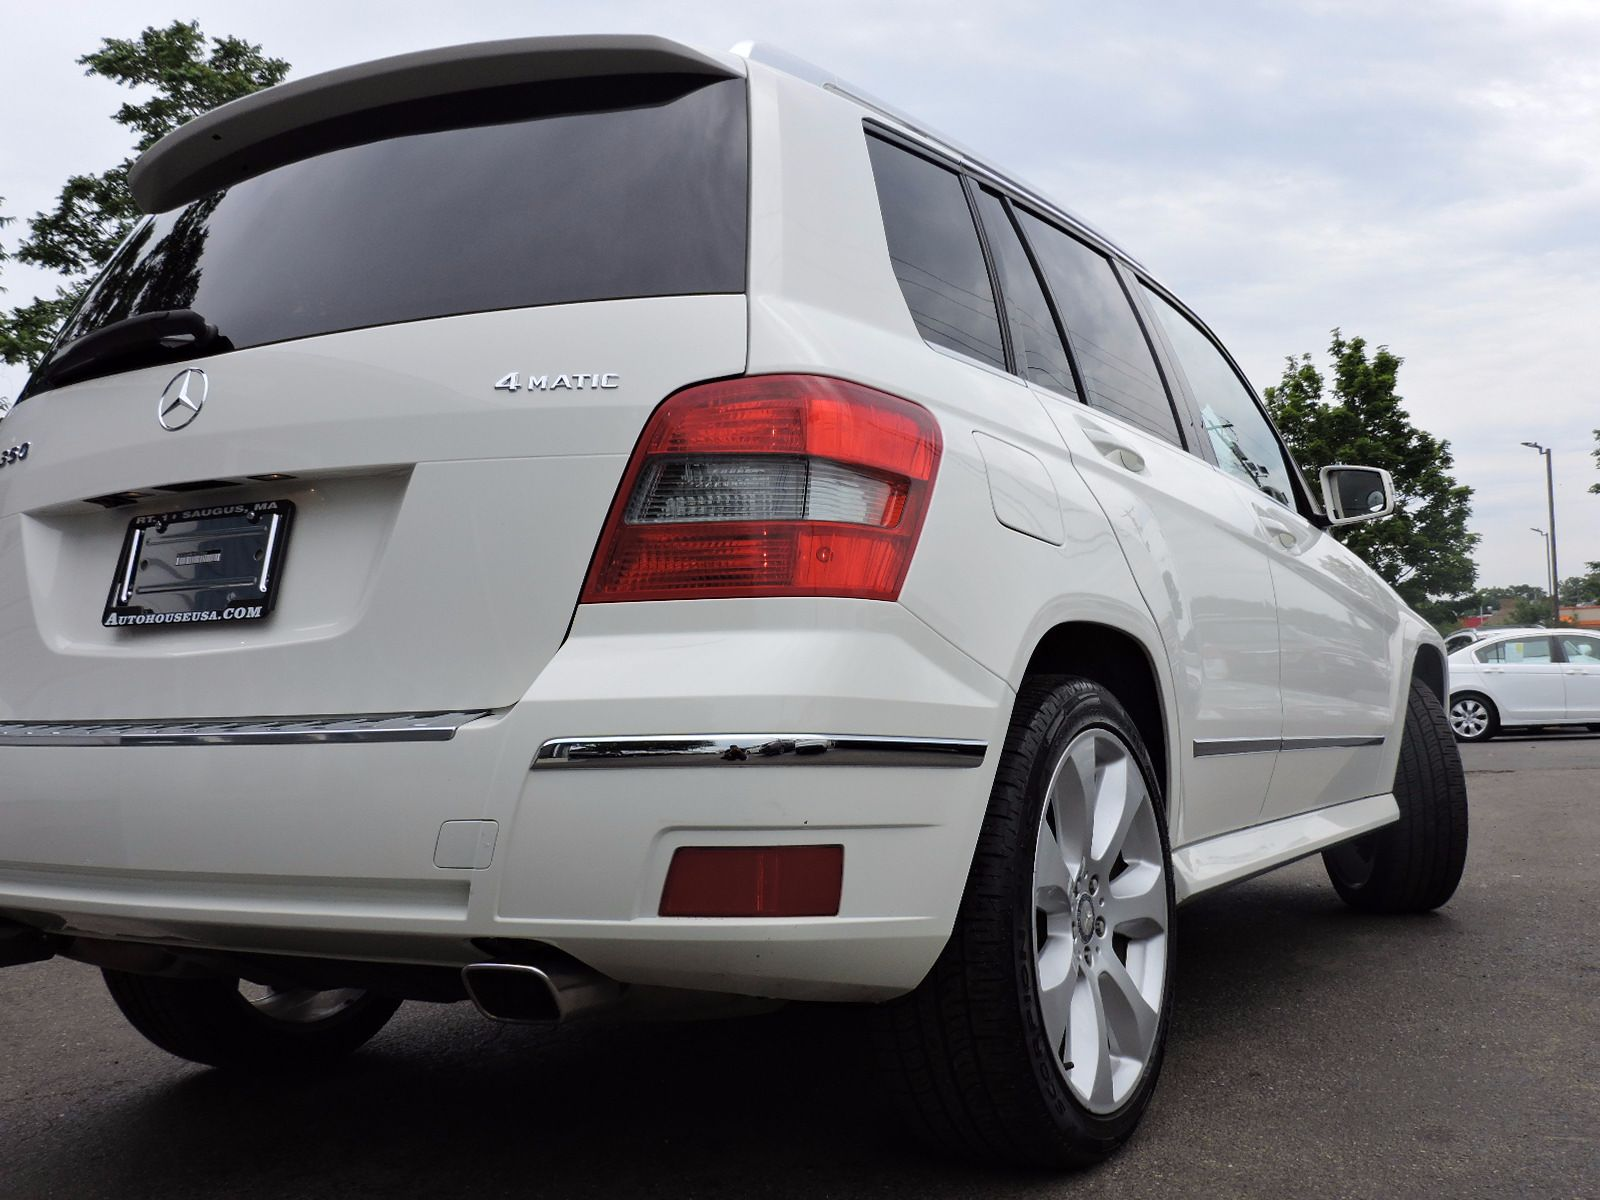 Used 2010 mercedes benz glk class s wsunroof at saugus for Mercedes benz glk class